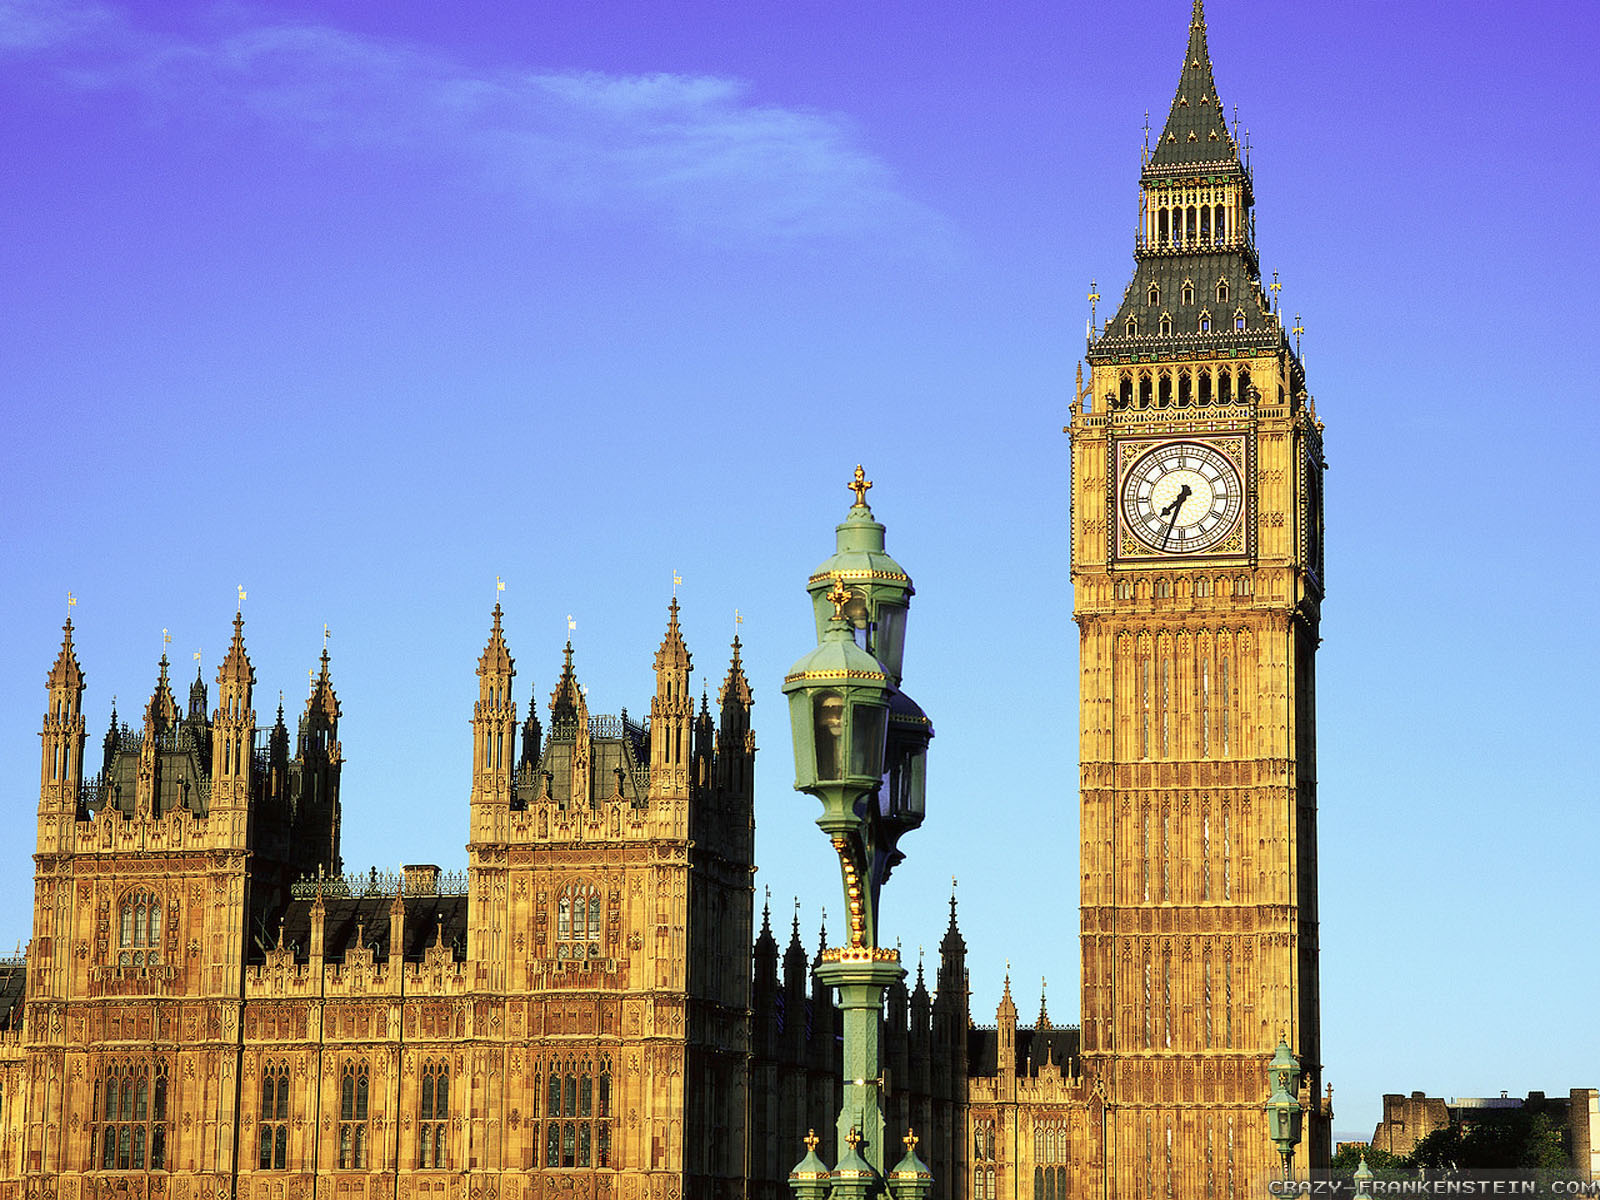 Wallpaper: Big Ben wallpapers 2. Resolution: 1024x768 | 1280x1024 | 1600x1200